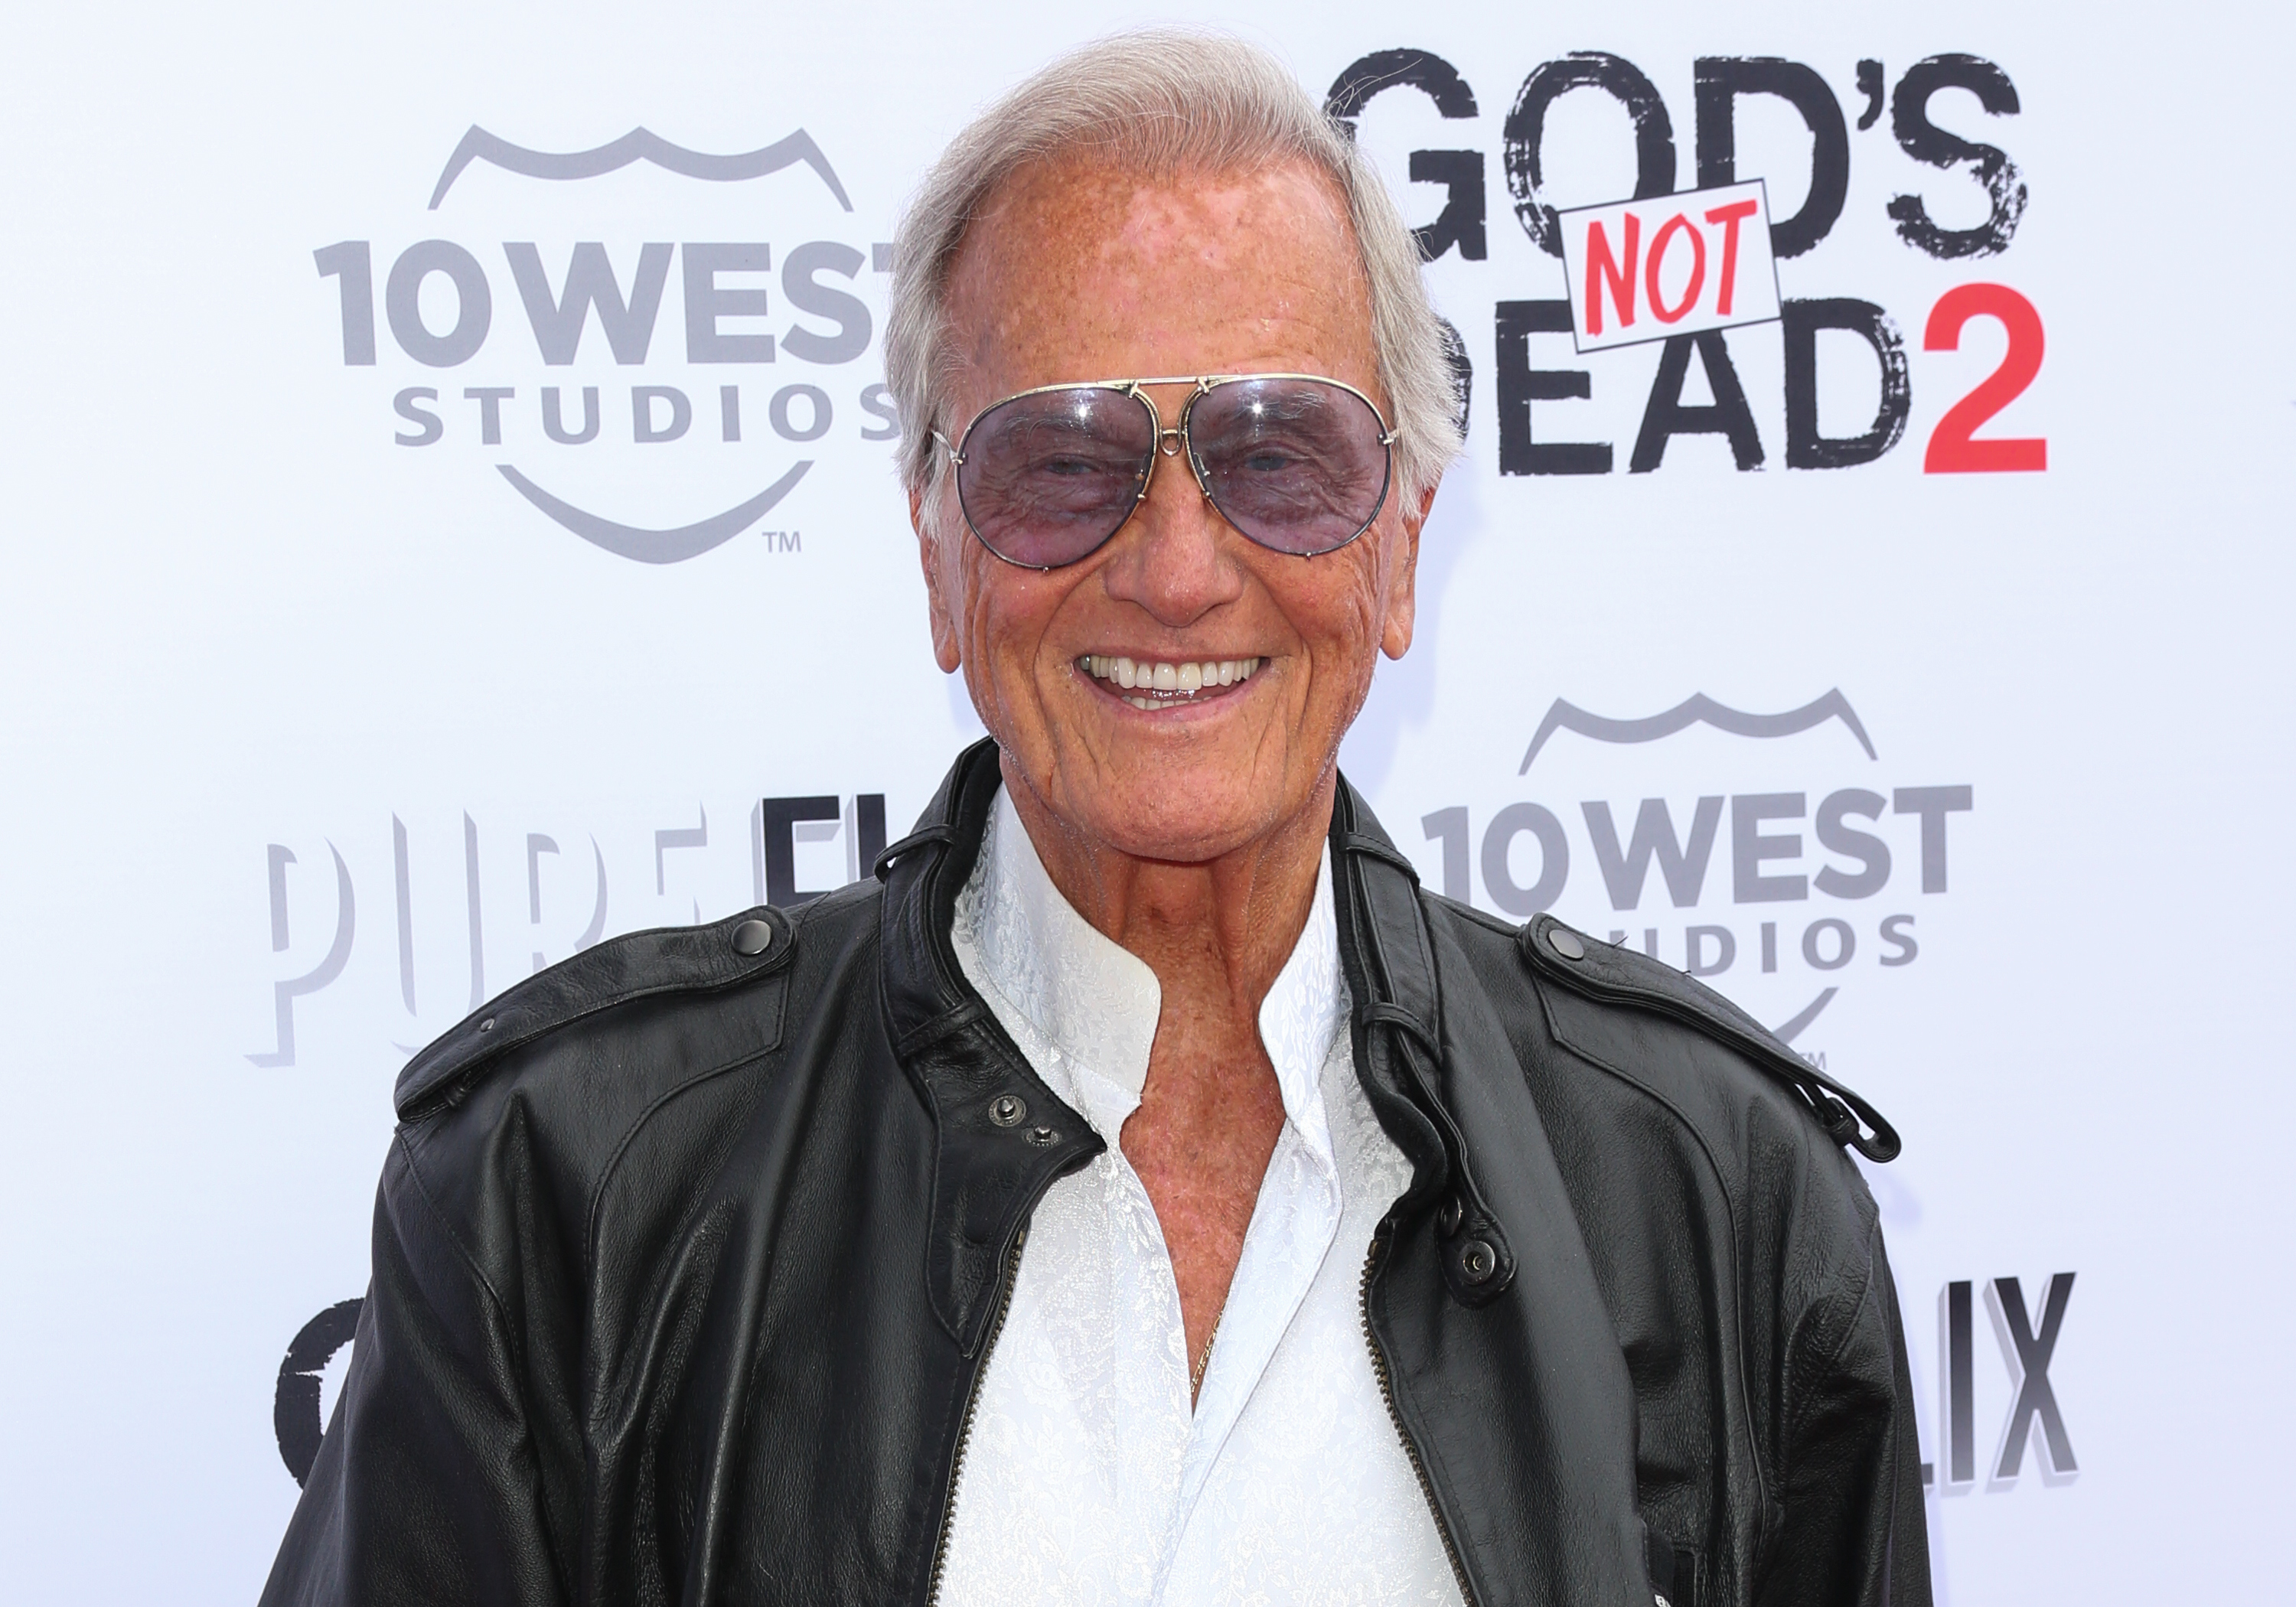 Singer Pat Boone attends the premiere of  God's Not Dead 2  at Directors Guild Of America on March 21, 2016 in Los Angeles, California.